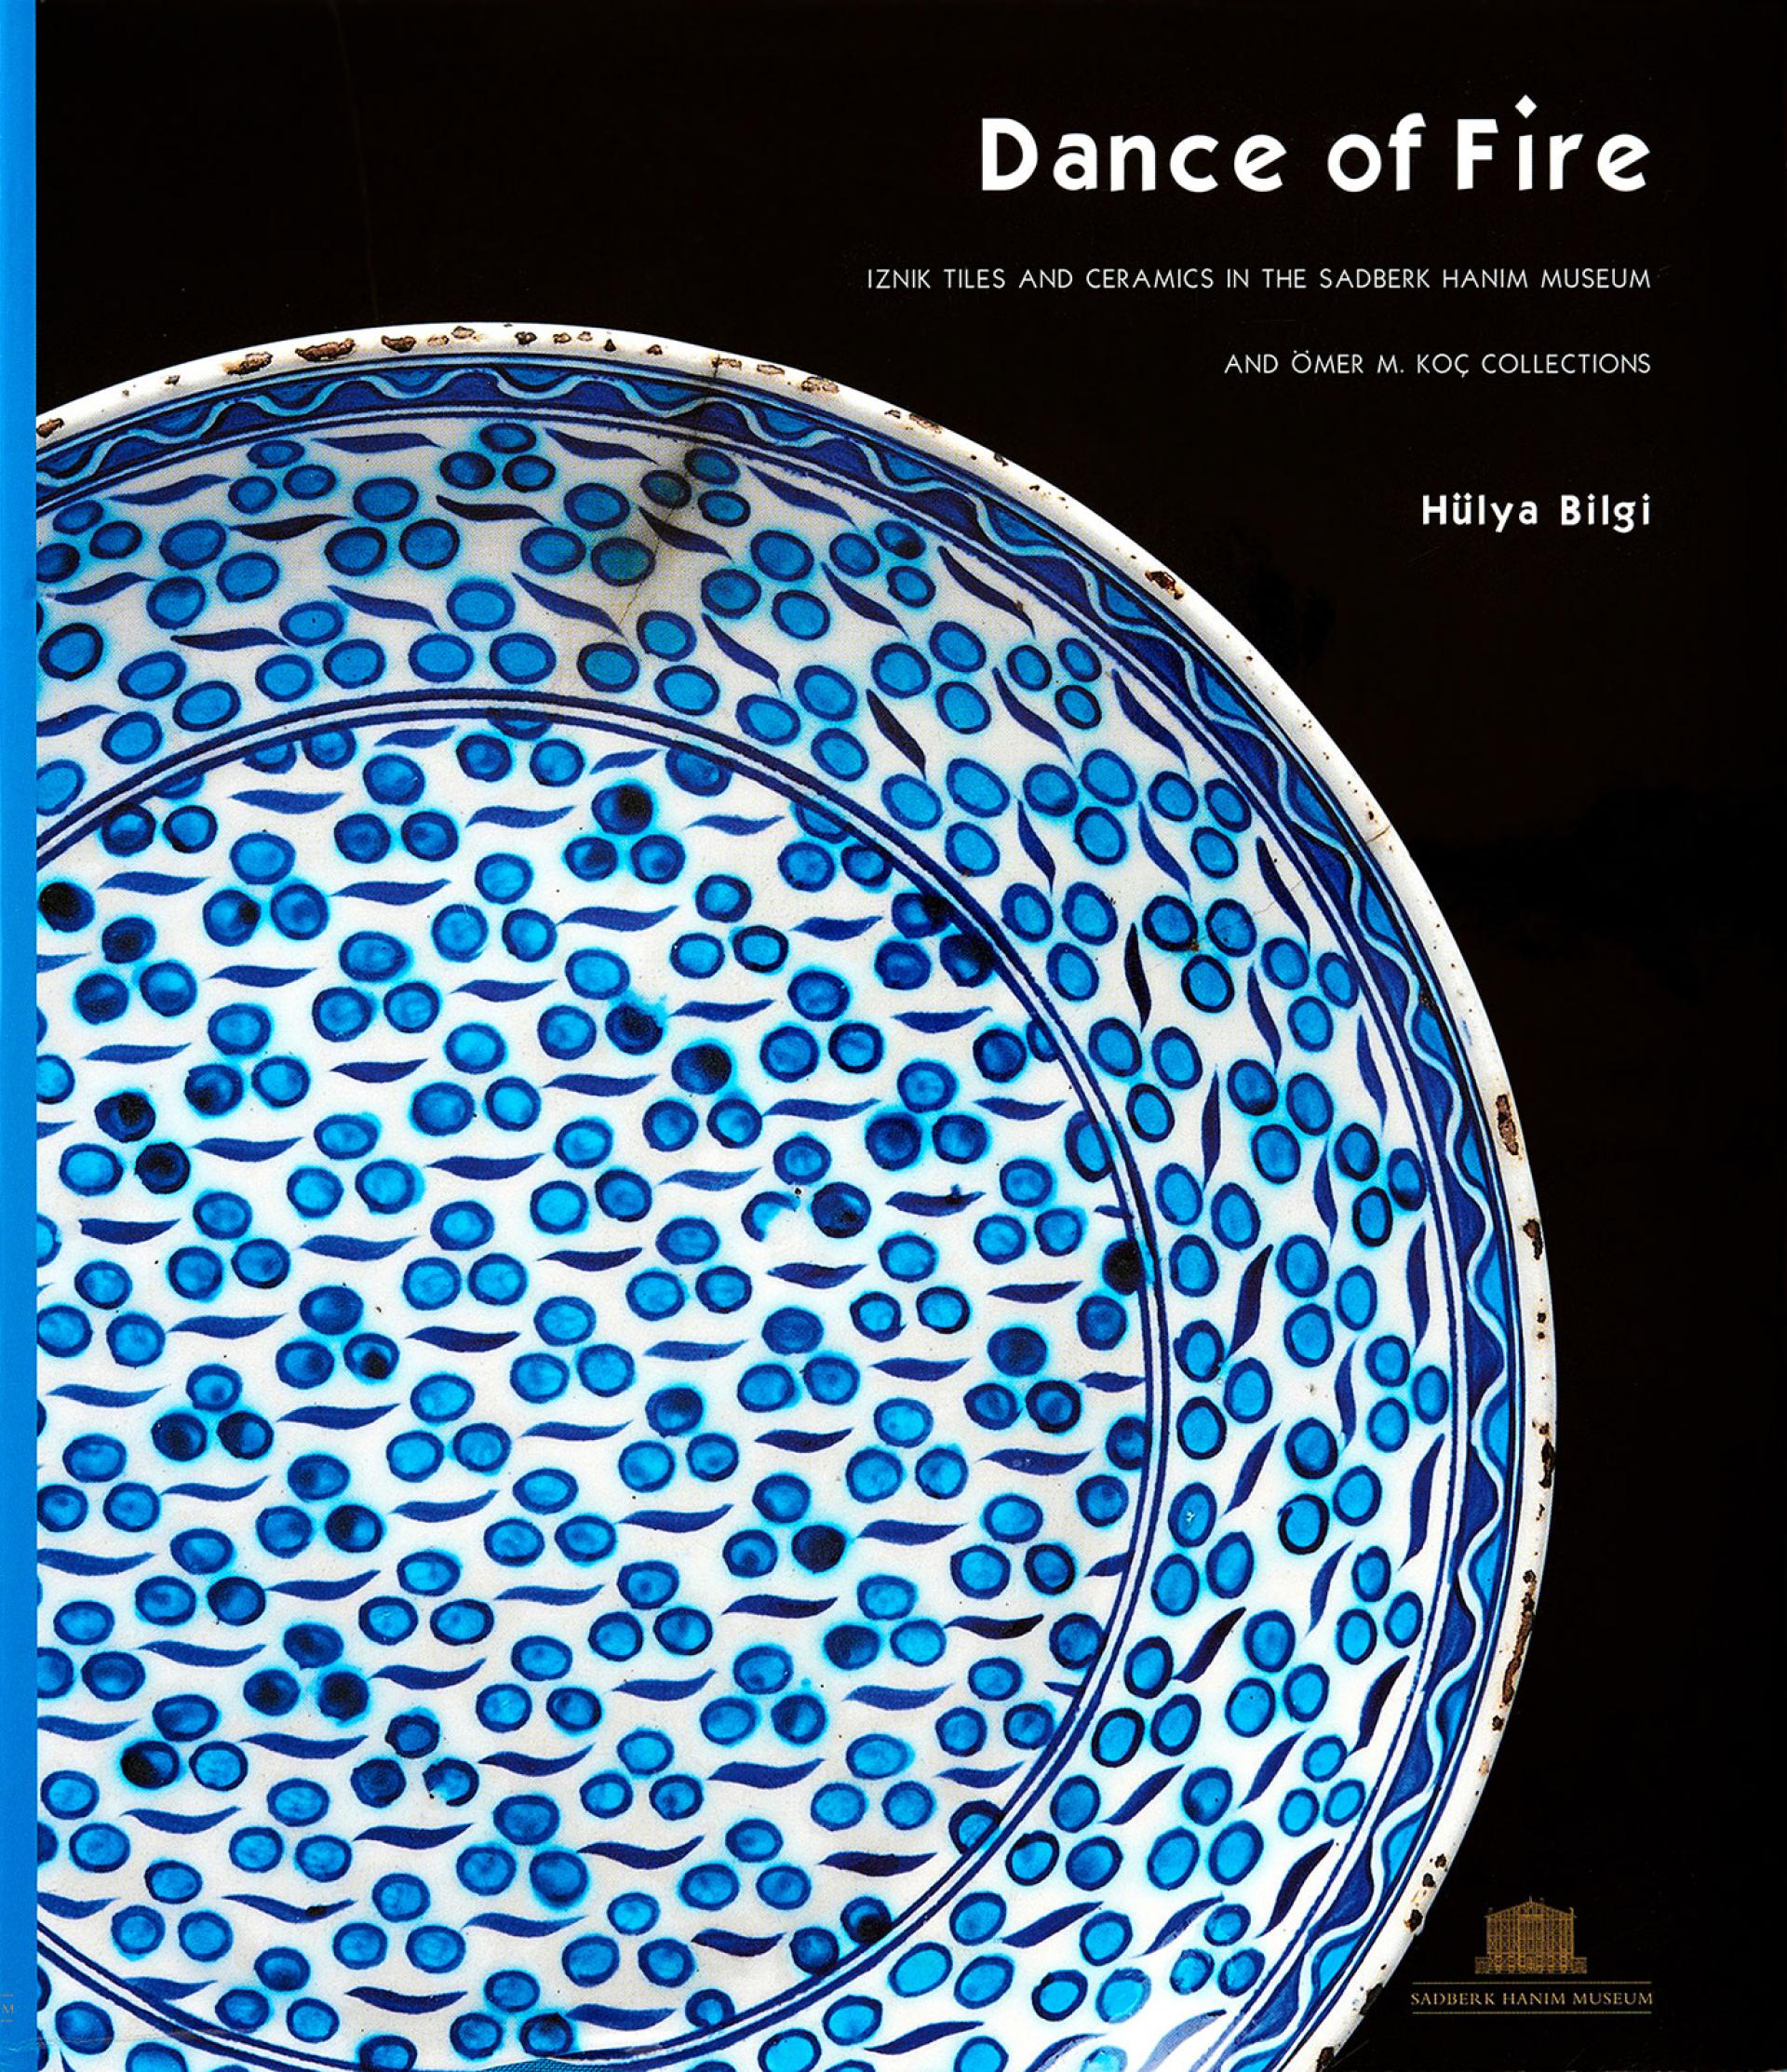 Dance of Fire - Iznik Tiles and Ceramics in the Sadberk Hanım Museum and Ömer M. Koç Collections - KİTAPLAR - Sadberk Hanım Müzesi